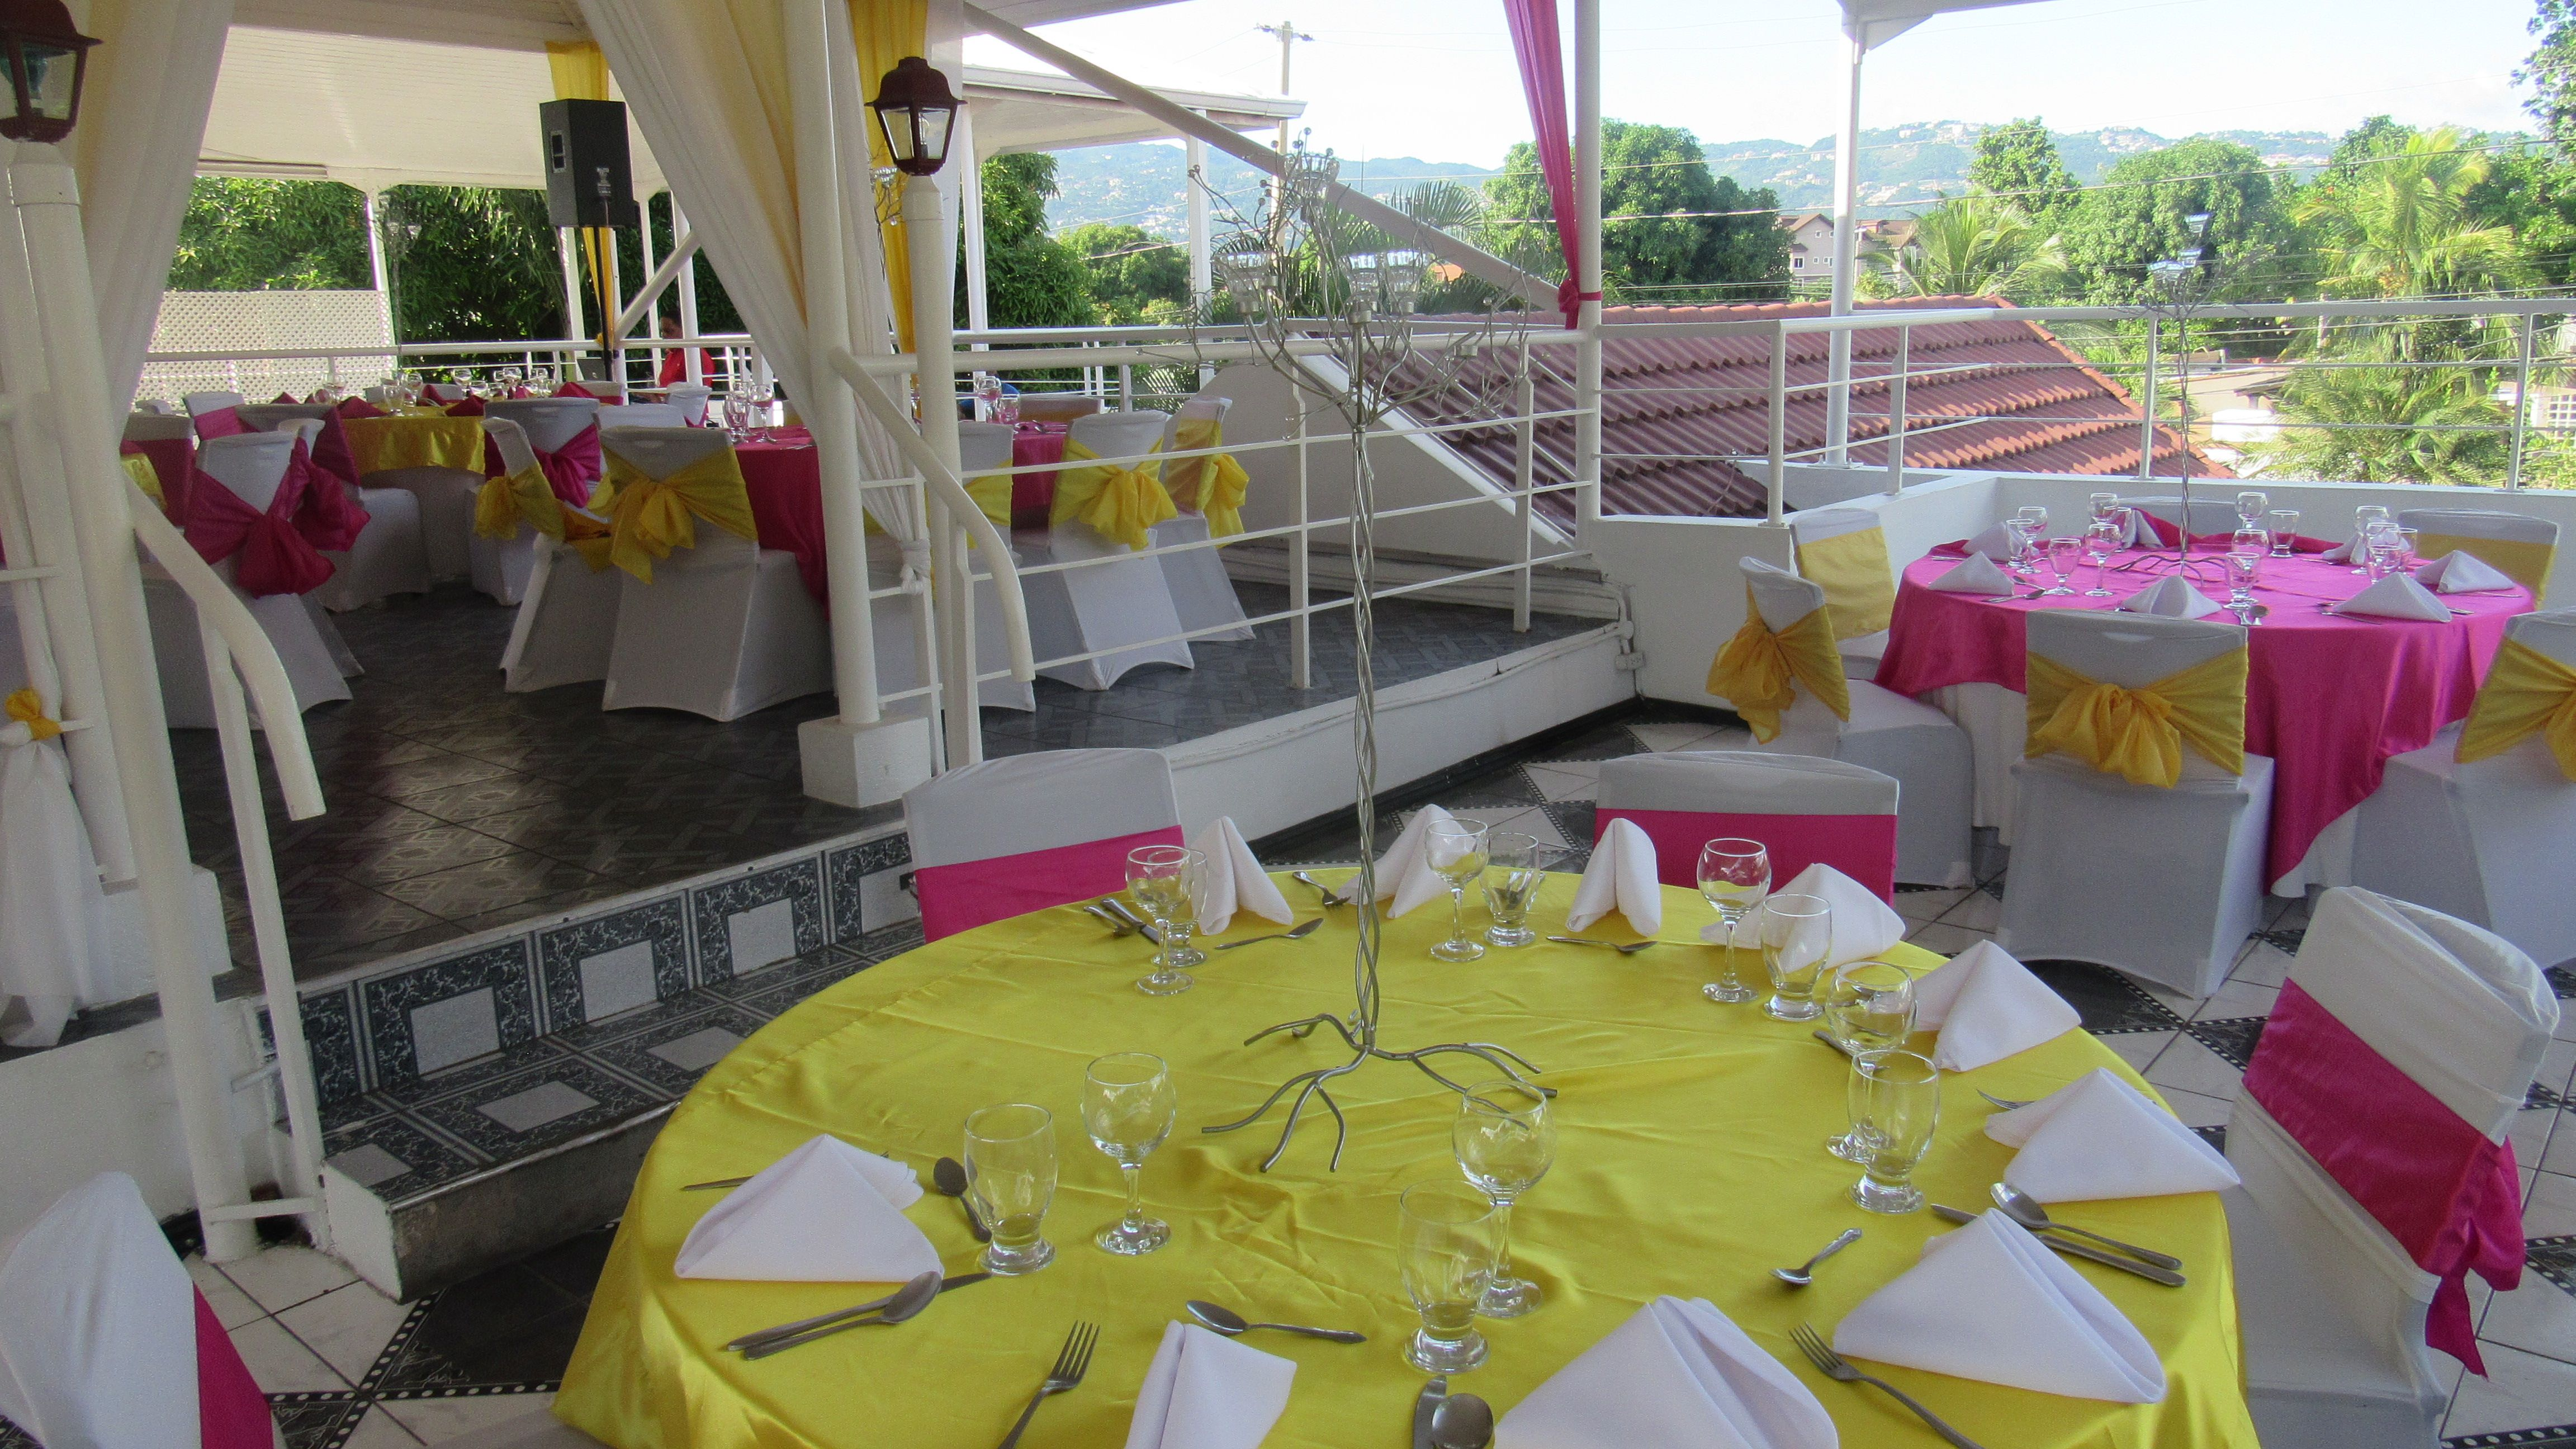 Wedding decorations yellow and gray  Pin by Victoria House Events on Wedding Decor  Pinterest  Weddings